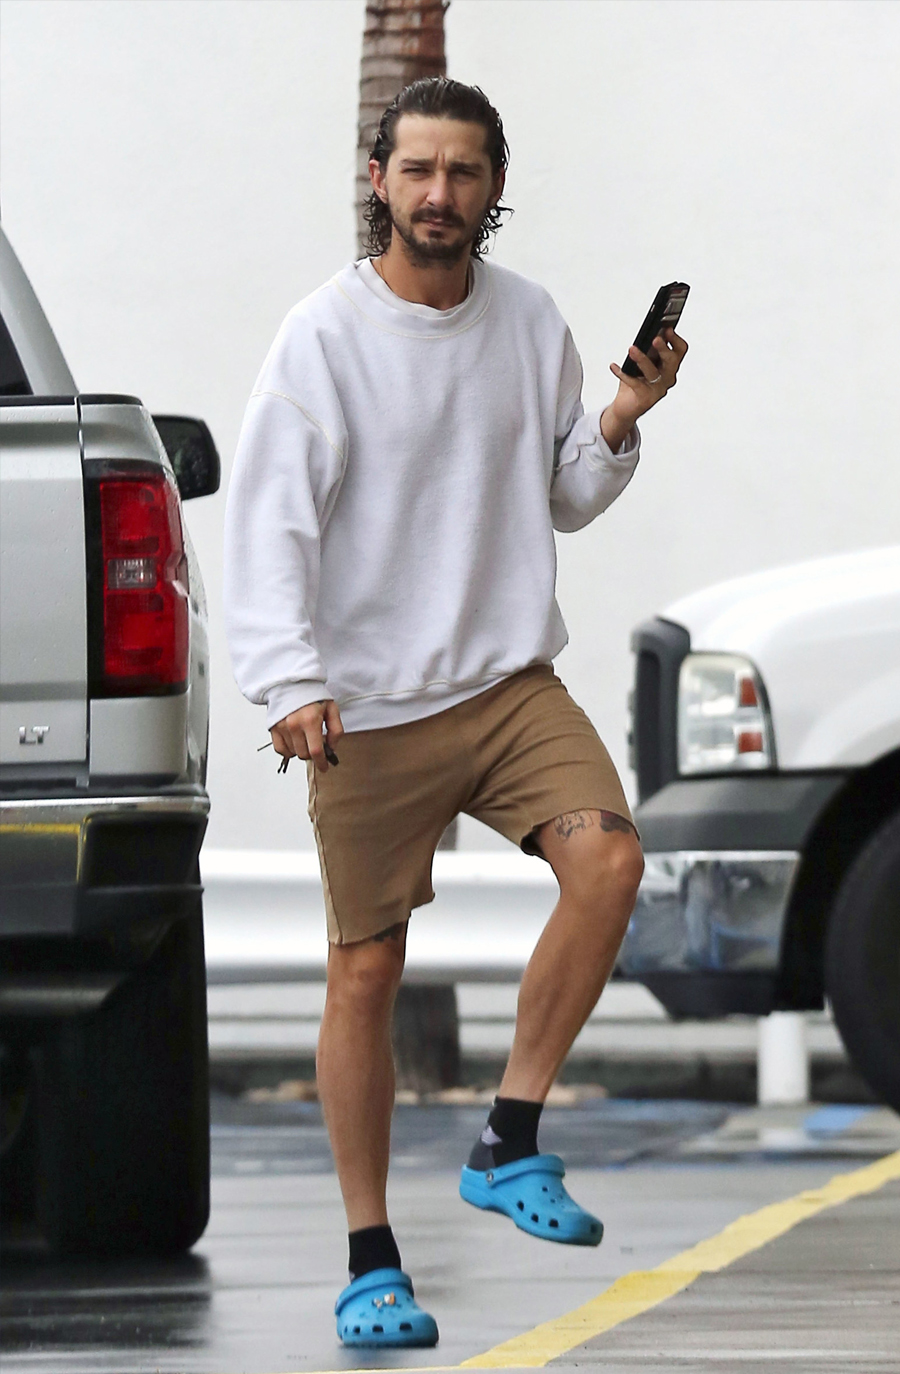 Shia Lebeouf in blue crocs